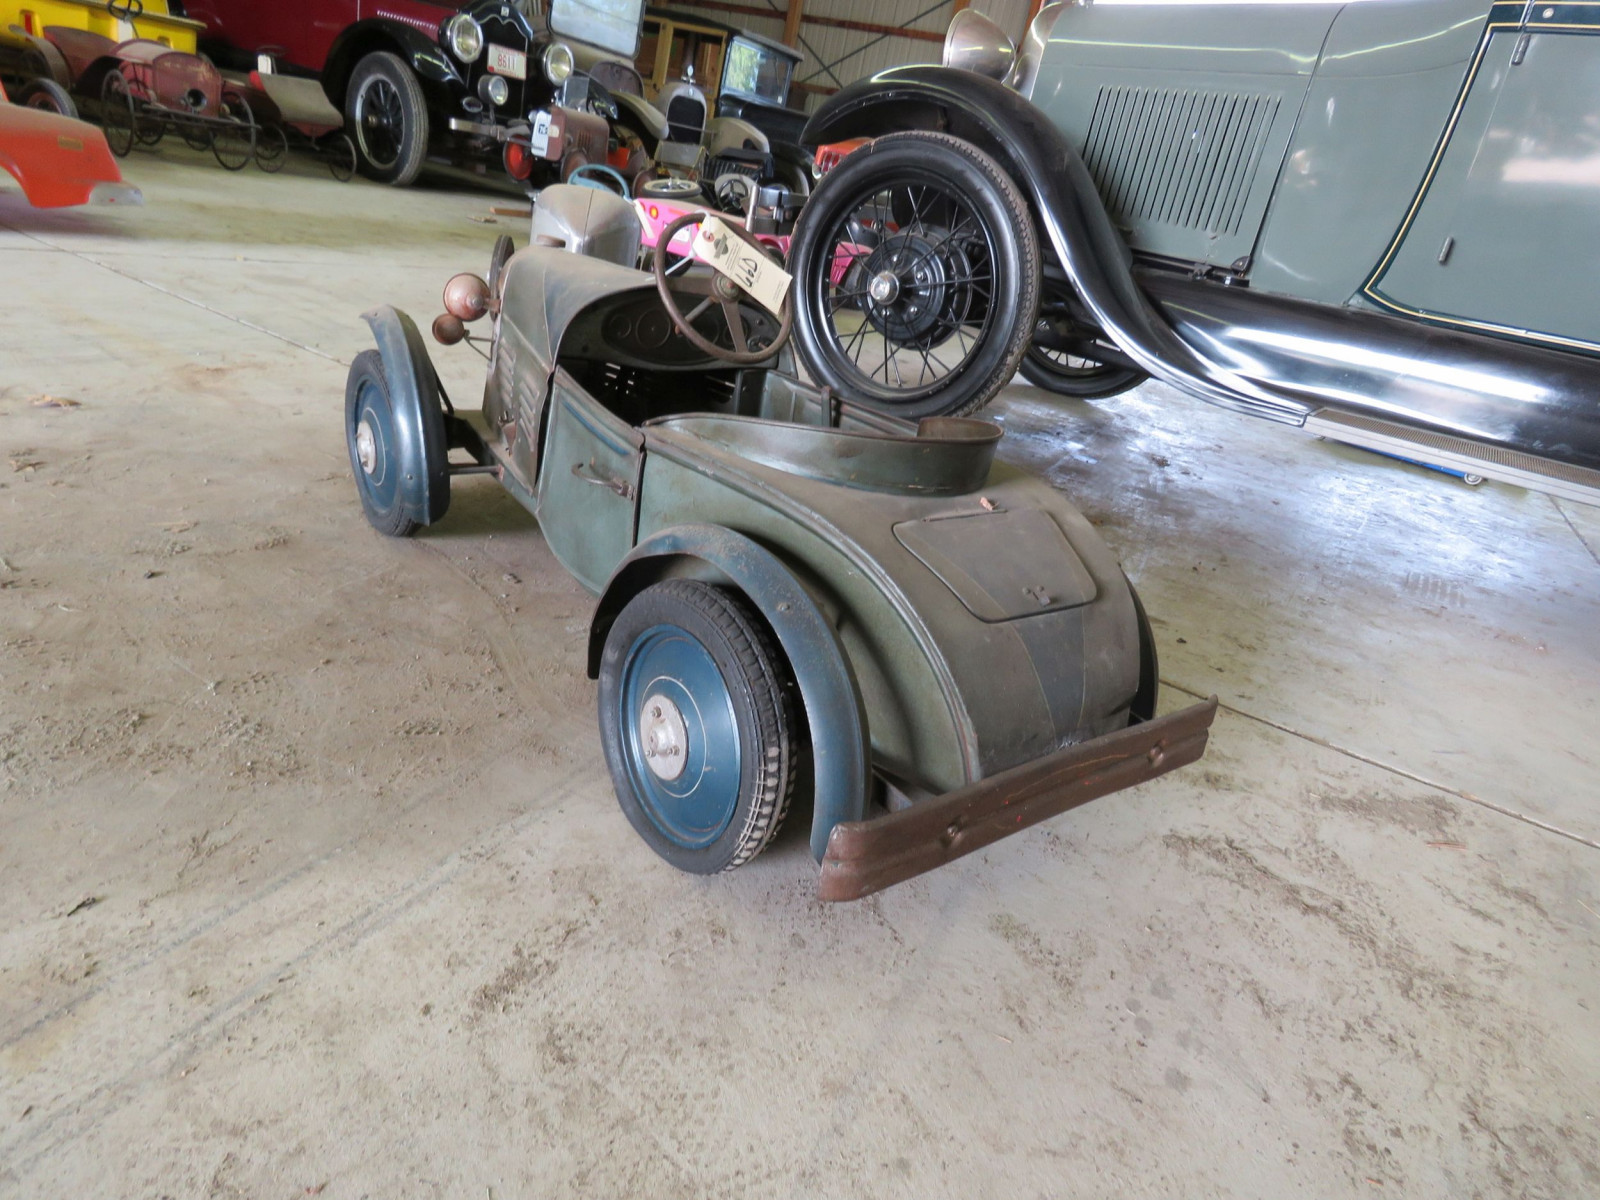 Vintage Regal Cycles Roadster Pedal Car - Image 5